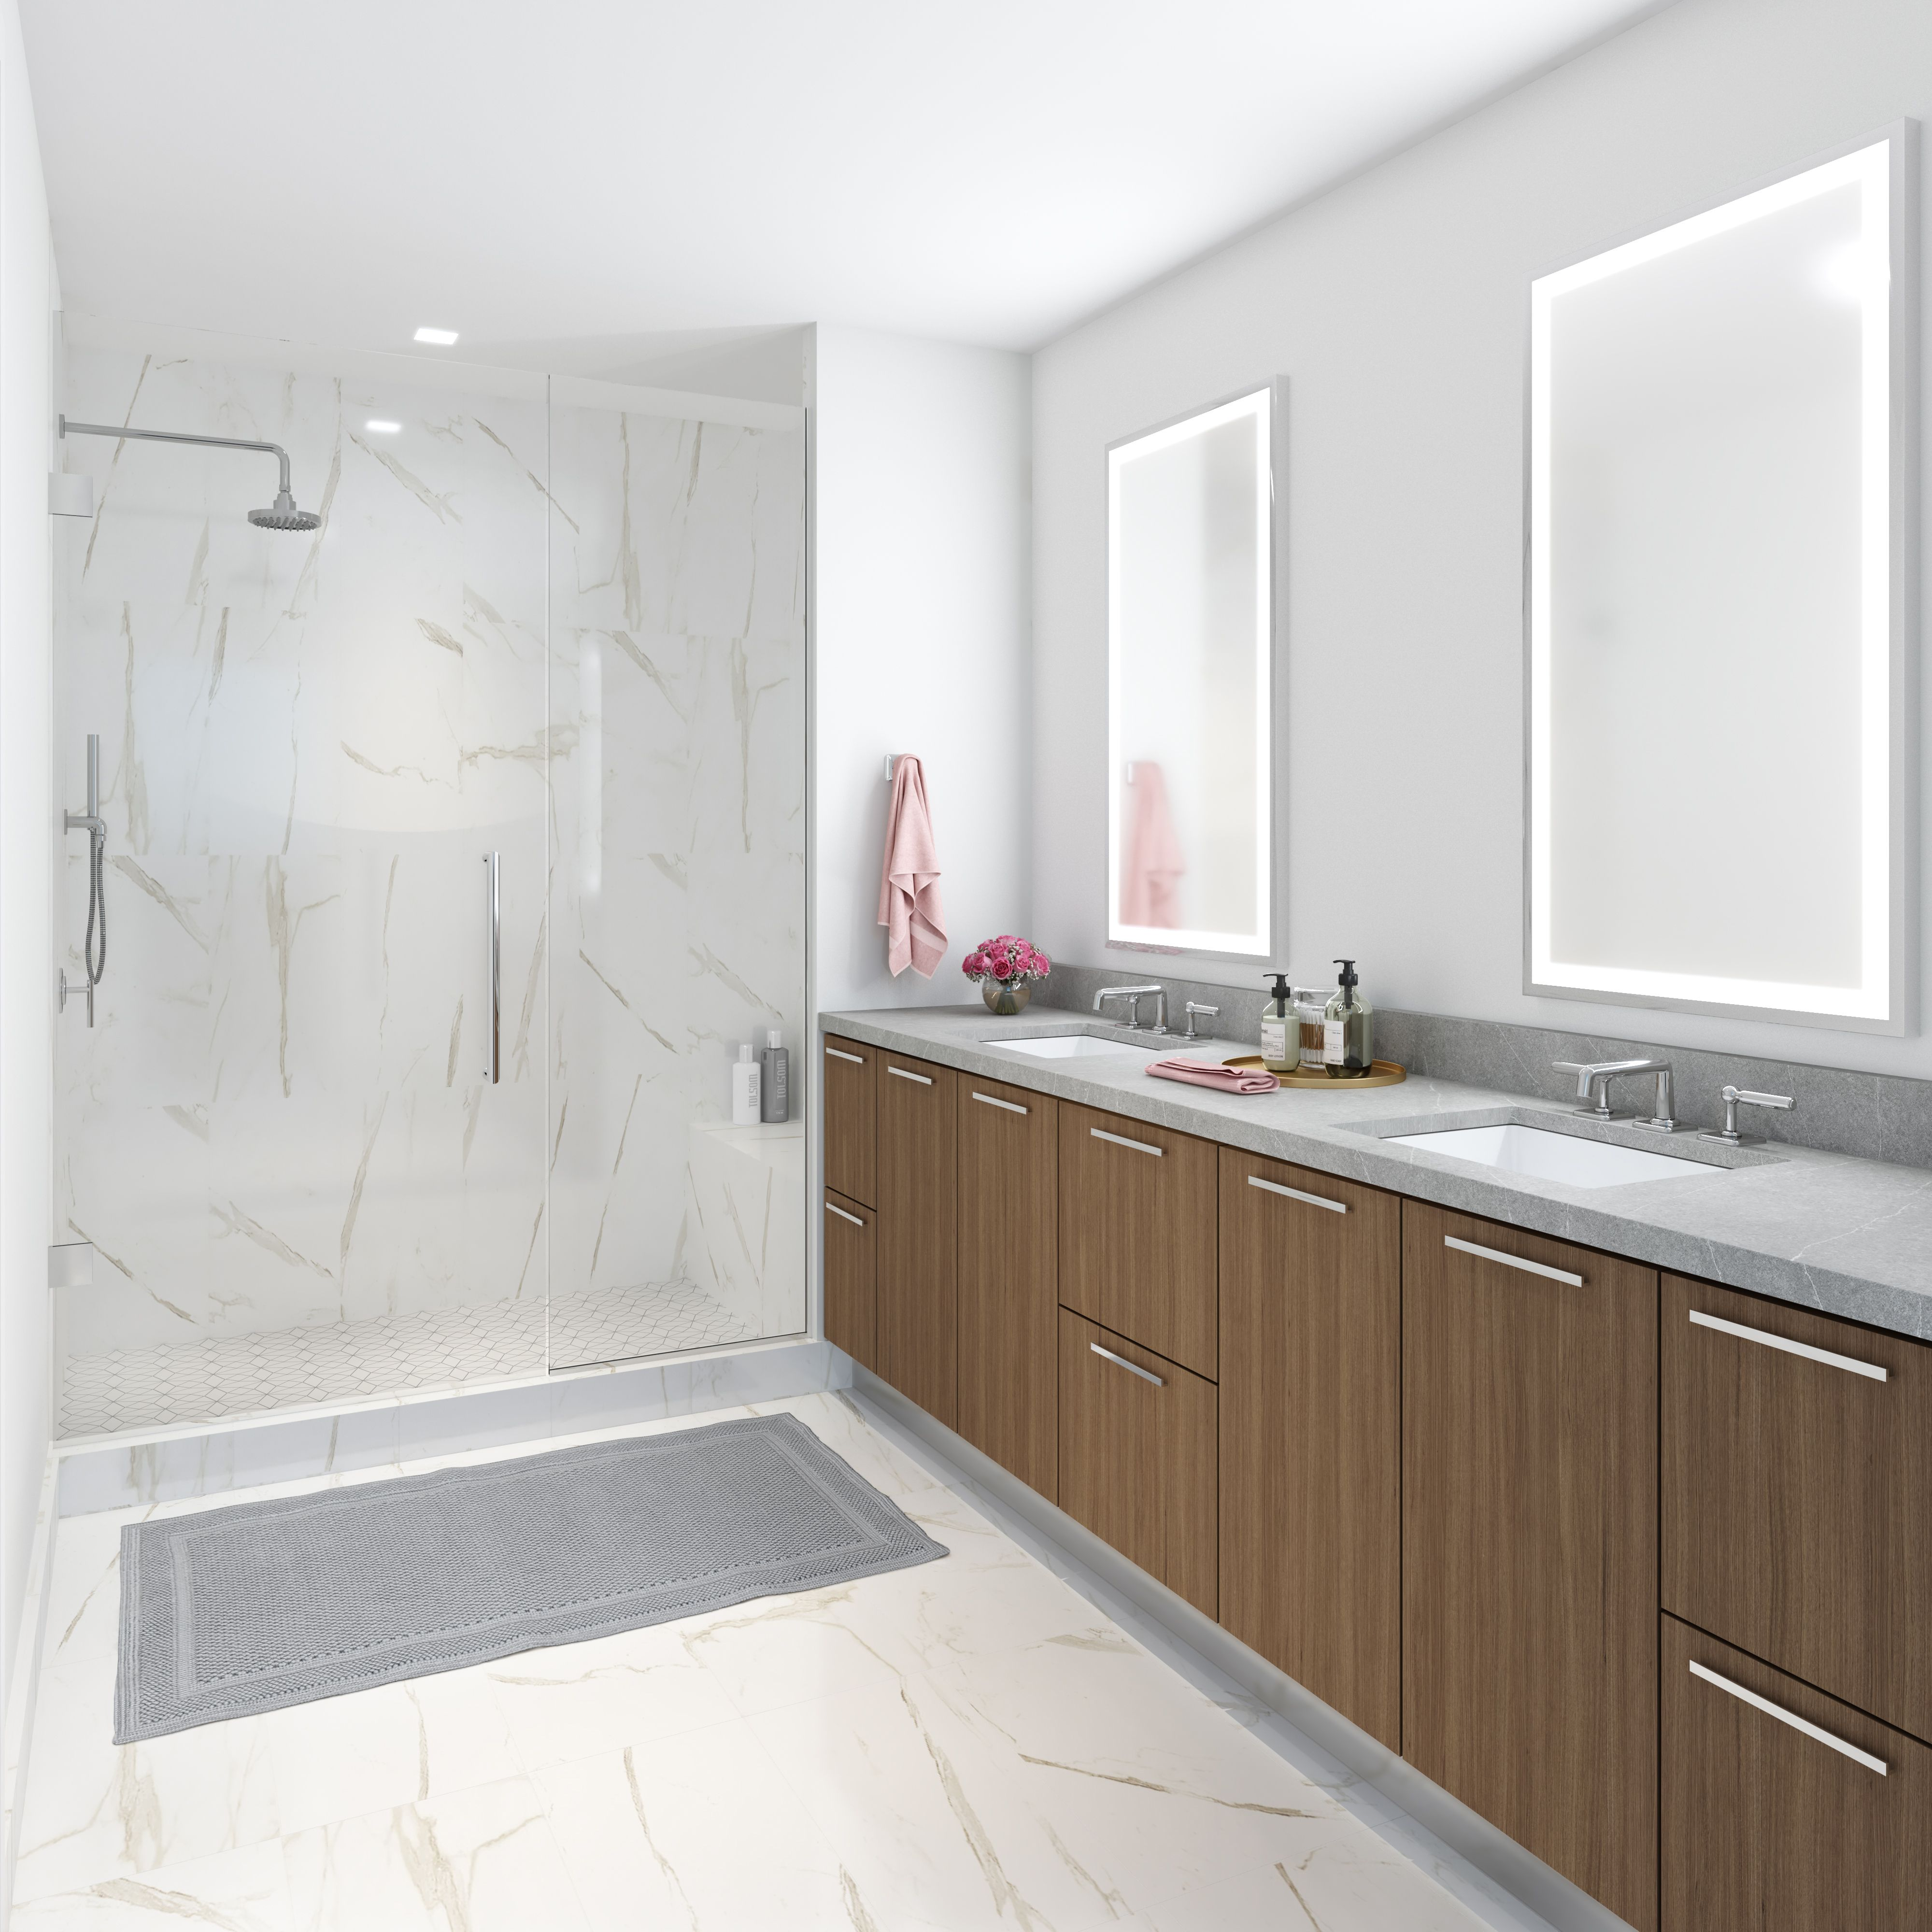 Bathroom featured in the Residence C8 By MUSE in Washington, VA